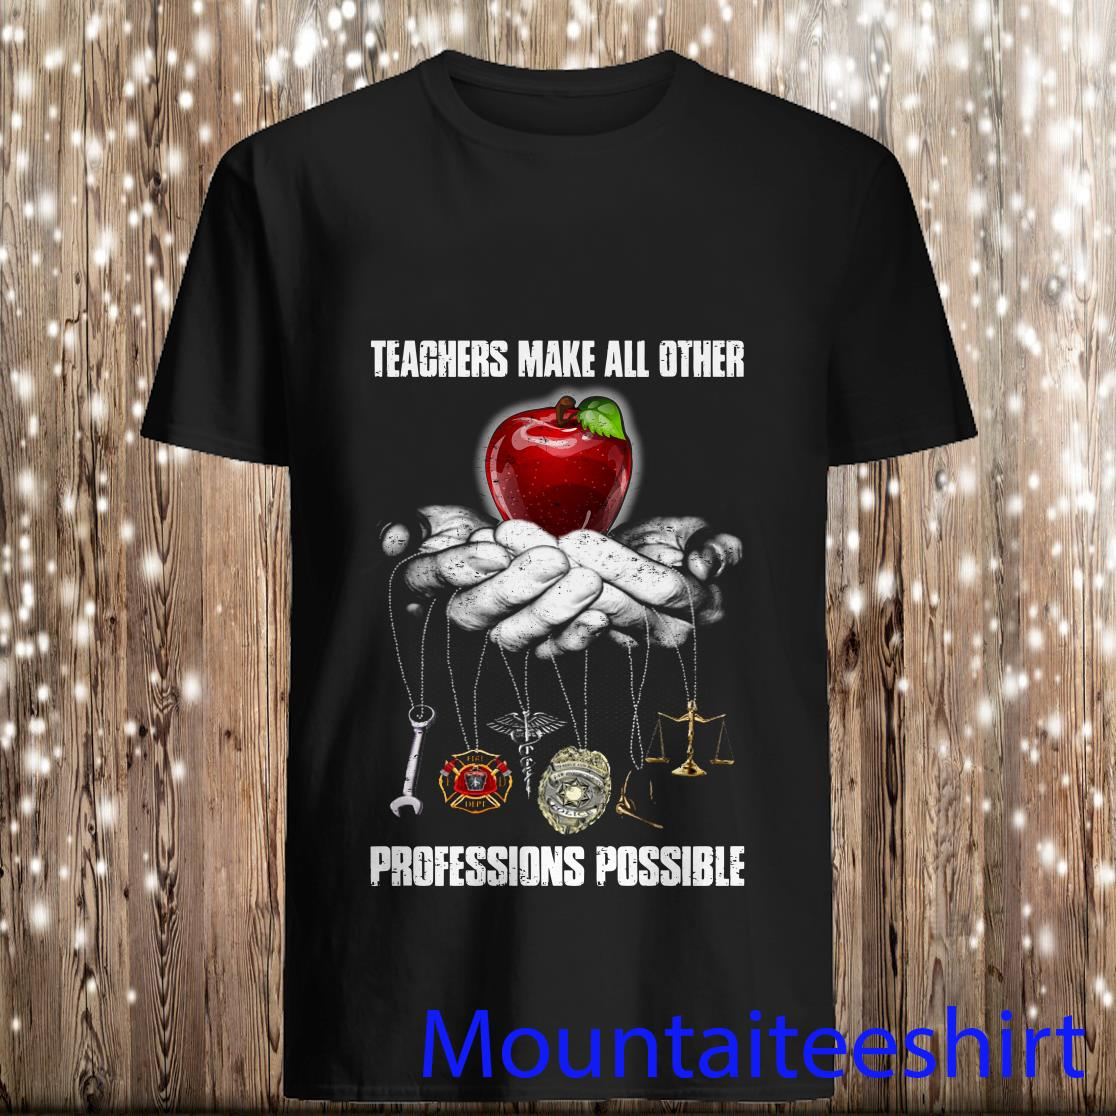 Teachers Make All Other Profession Possible Shirt